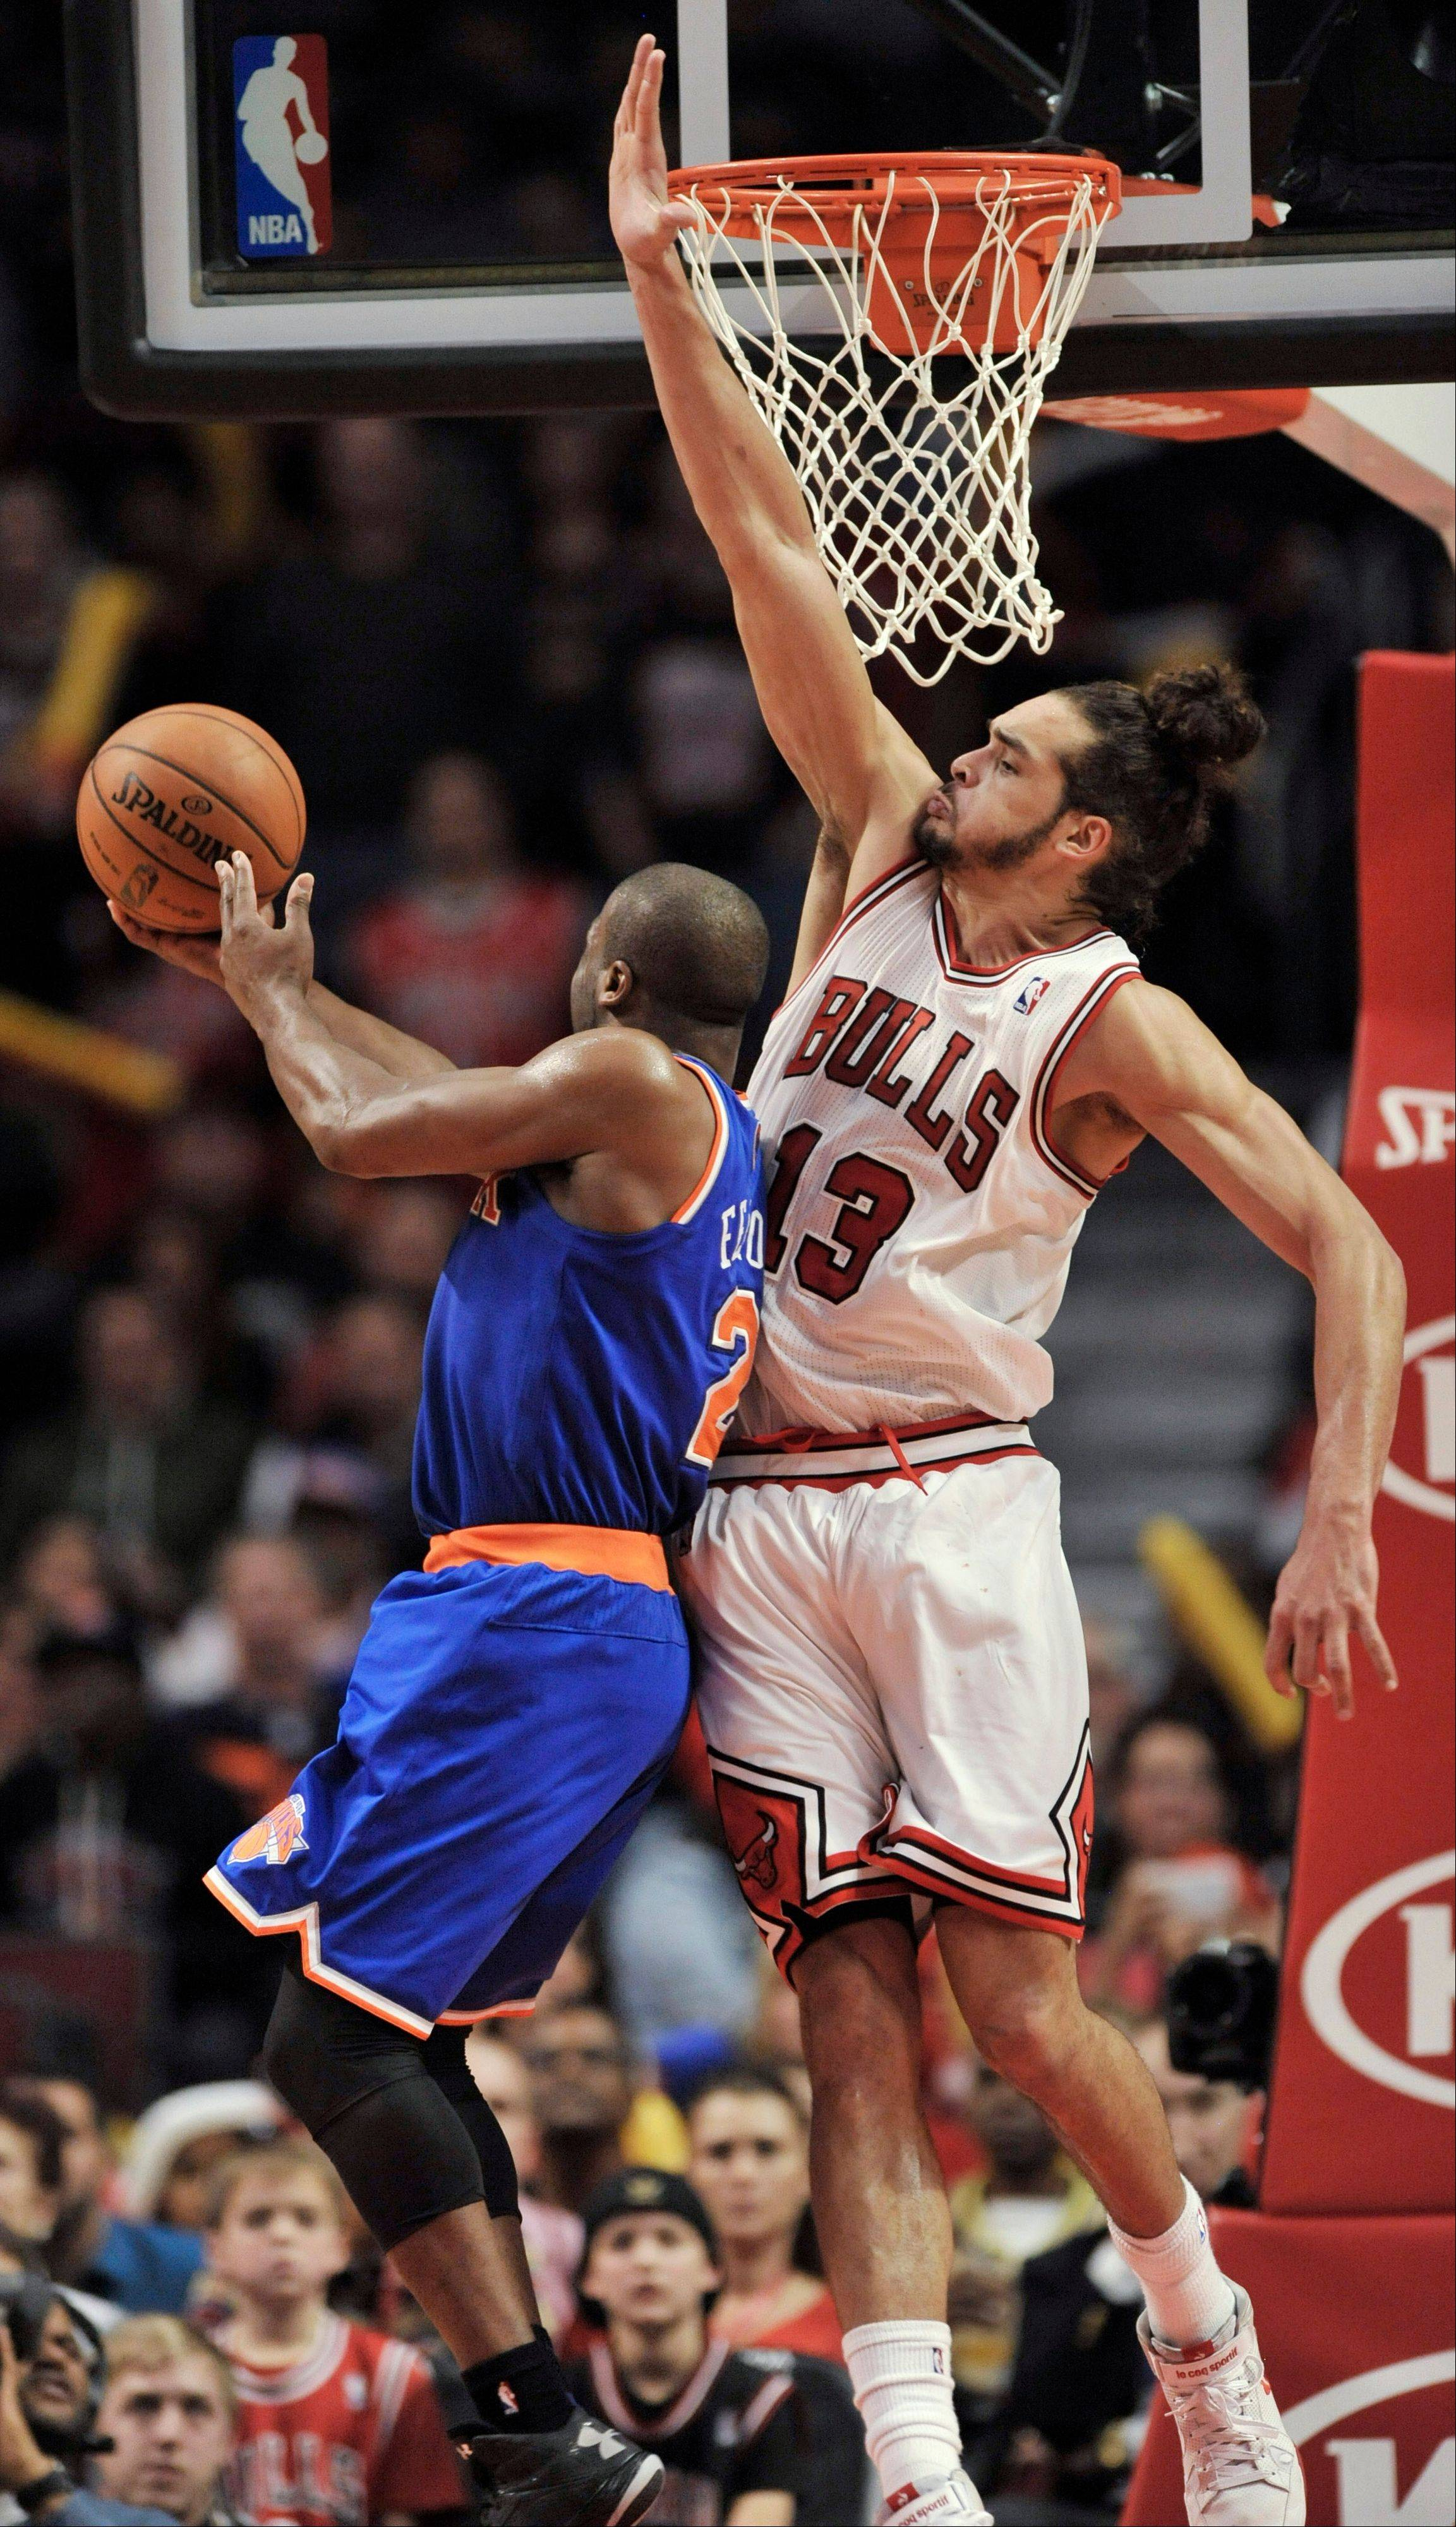 New York Knicks� Raymond Felton goes up for a shot against Chicago Bulls� Joakim Noah during the fourth quarter in Chicago Saturday. The Bulls won 93-85.